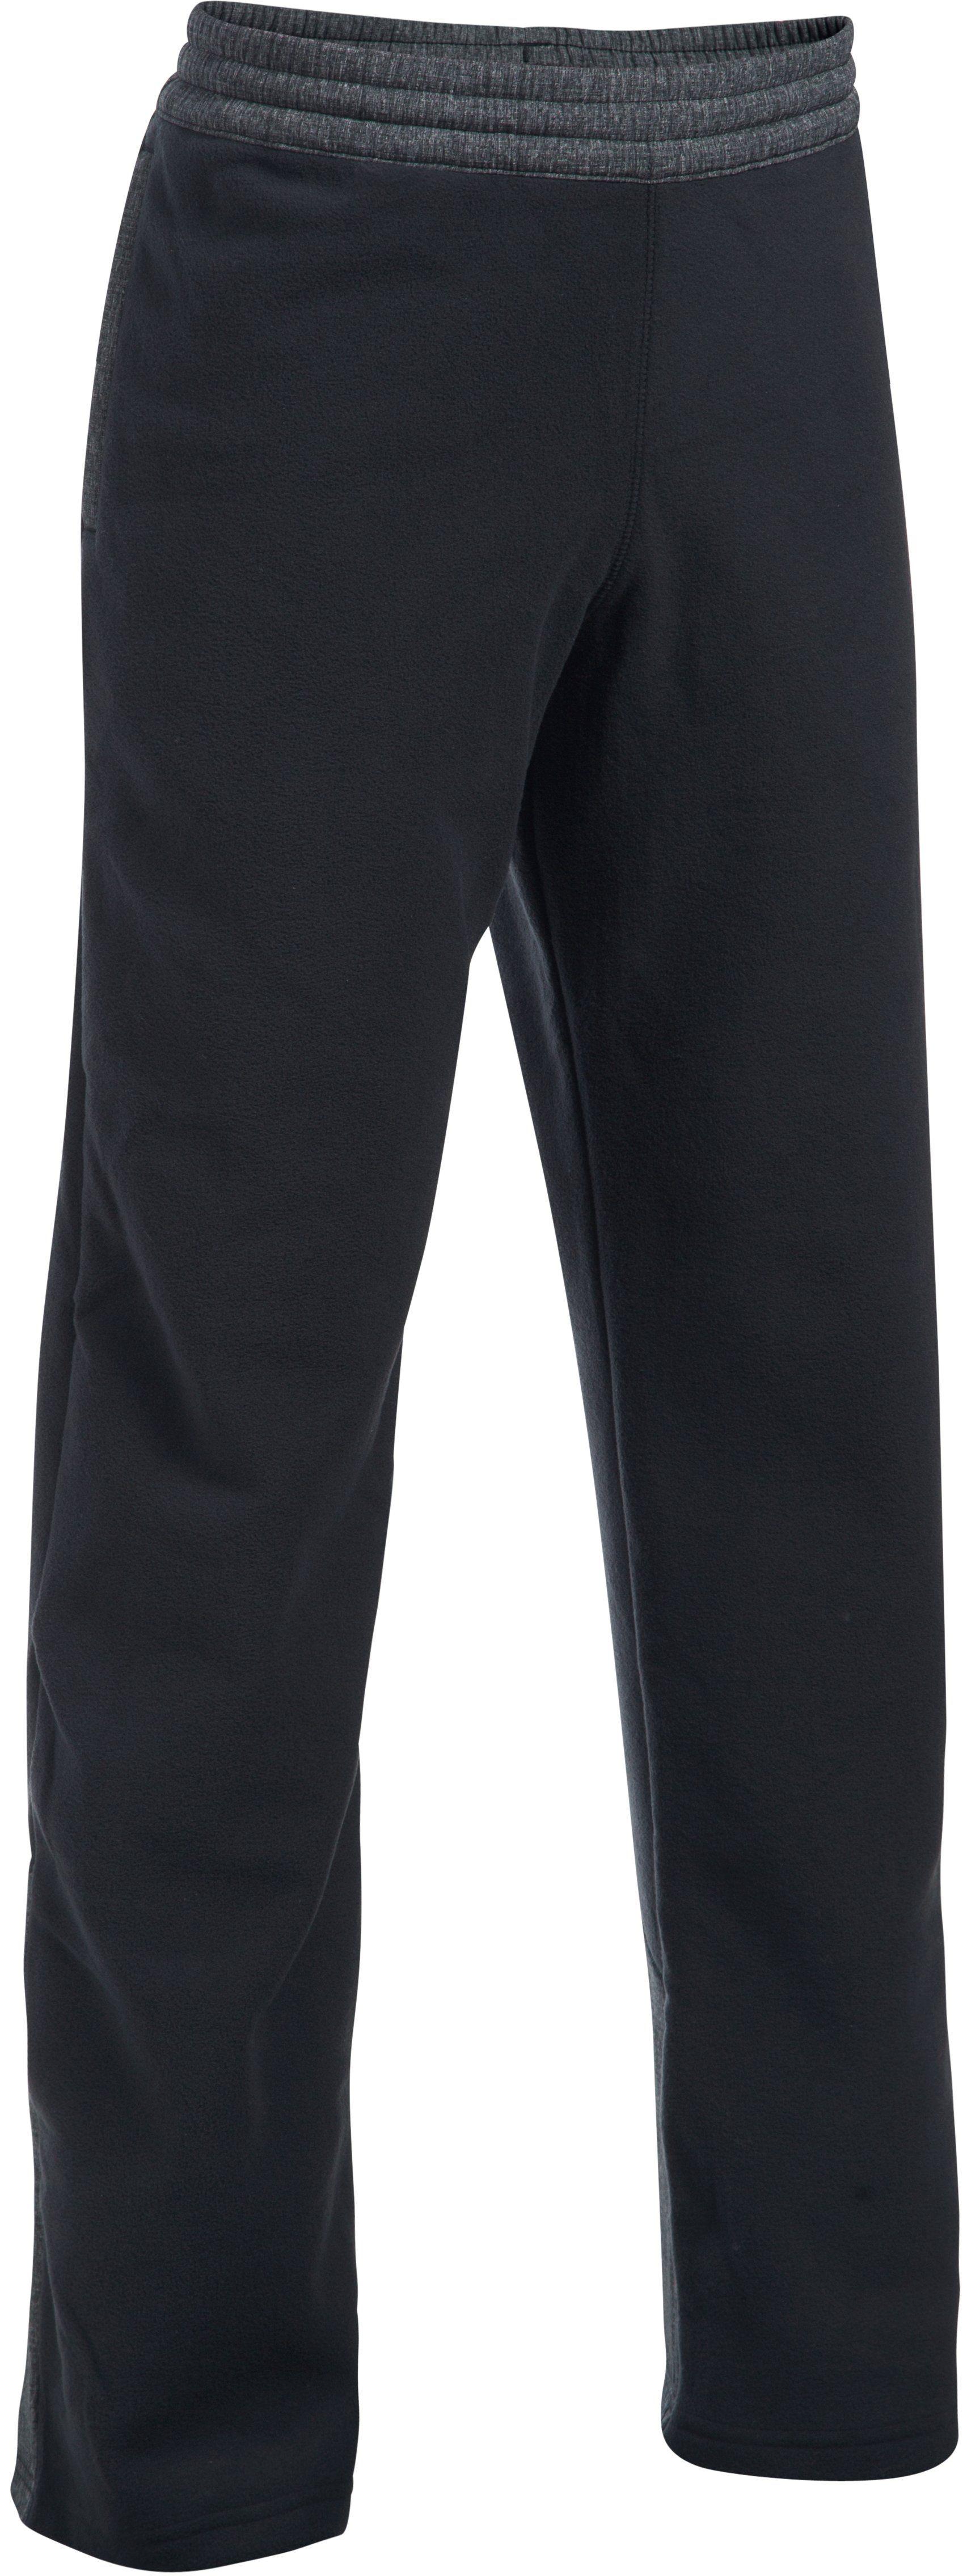 Boys' ColdGear® Infrared Fleece Pants, Black